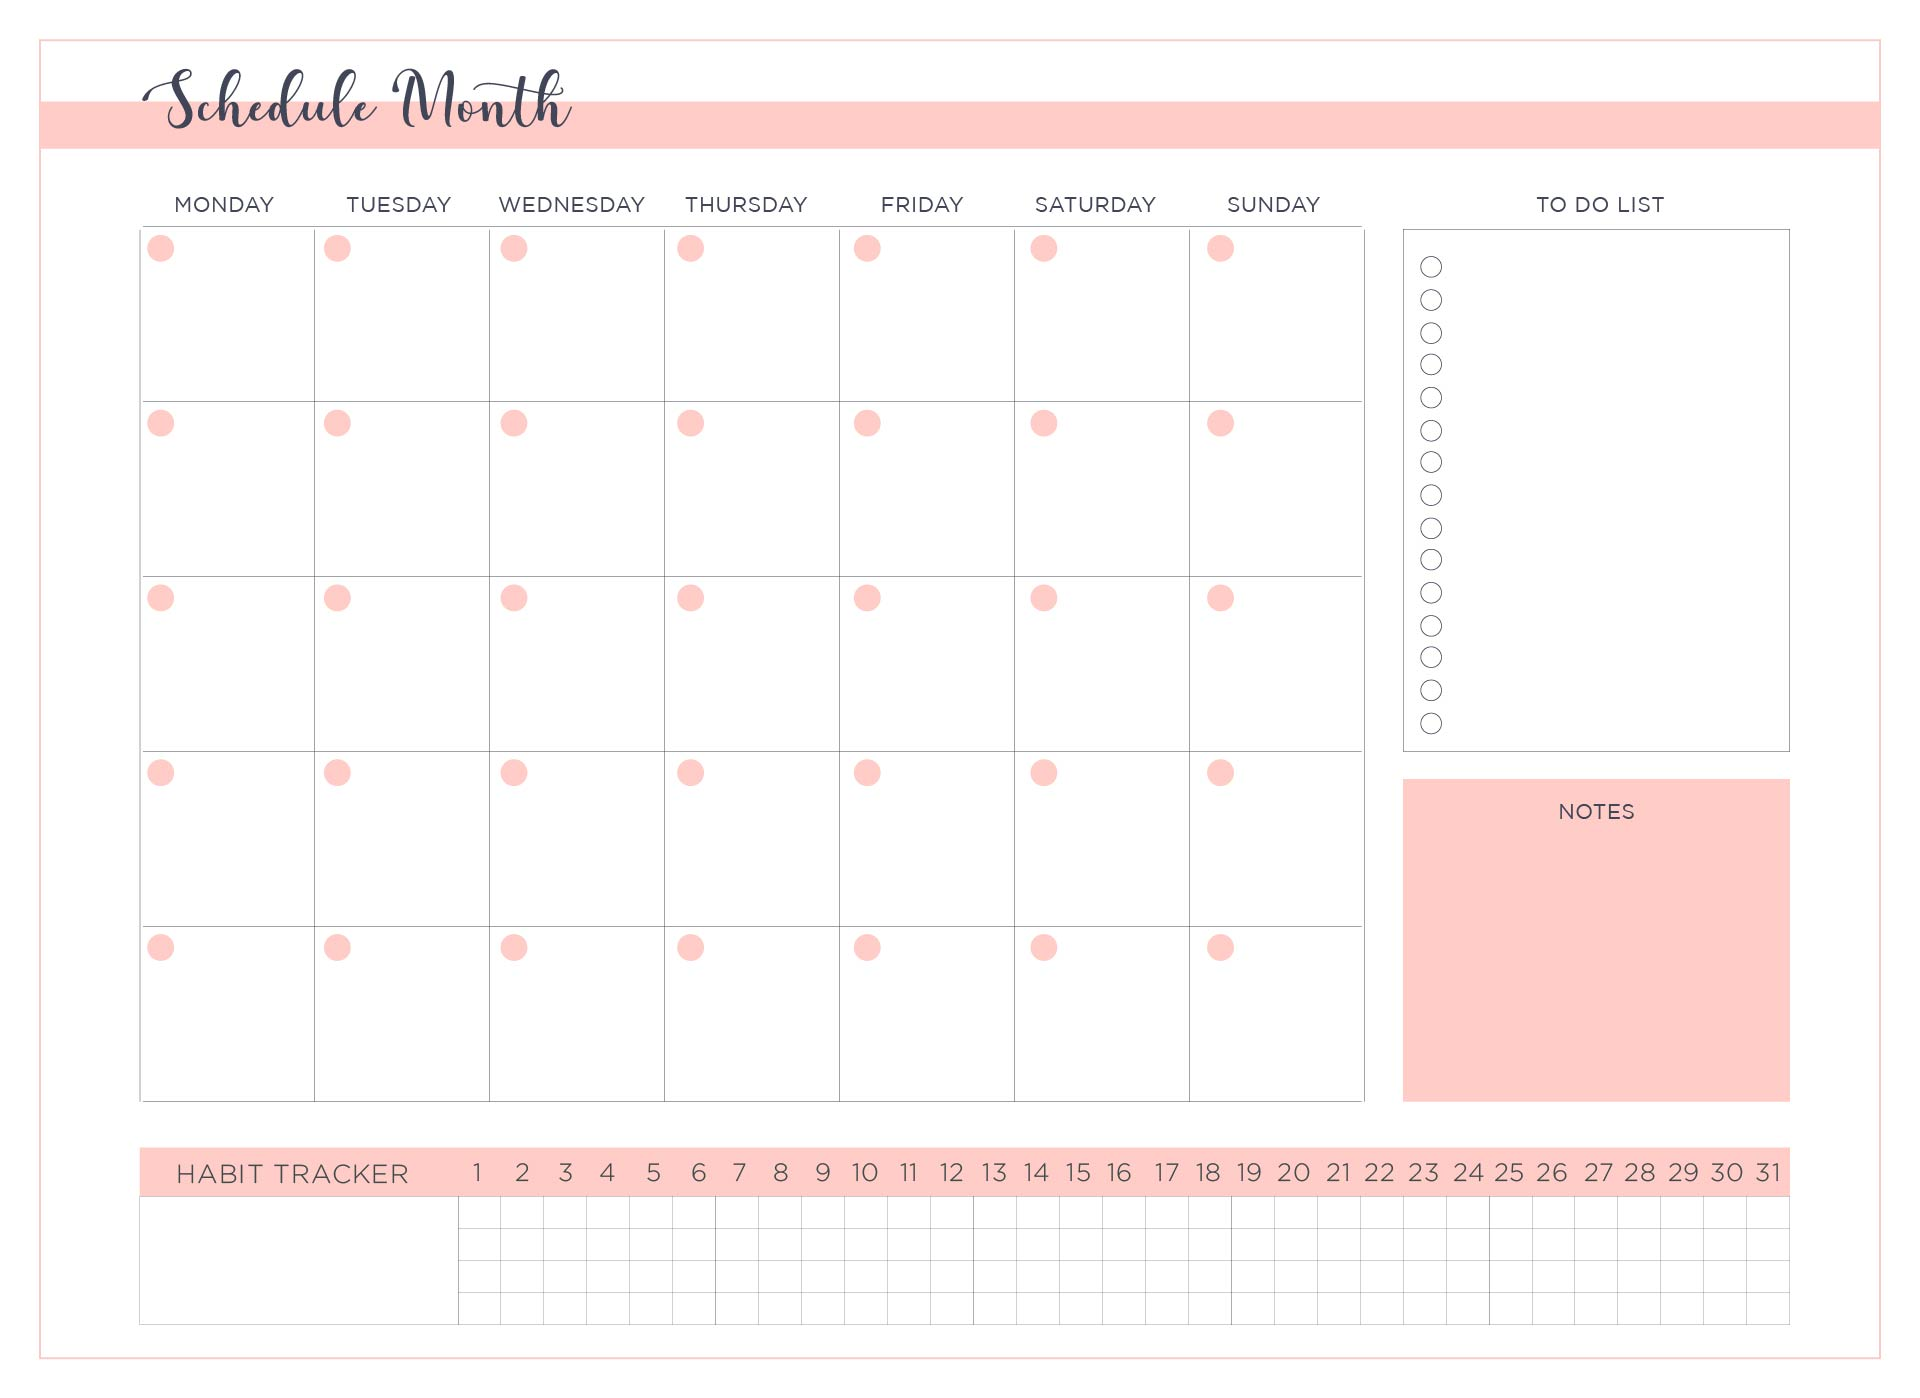 Employee Work Schedule Template Printable | Calendar ...